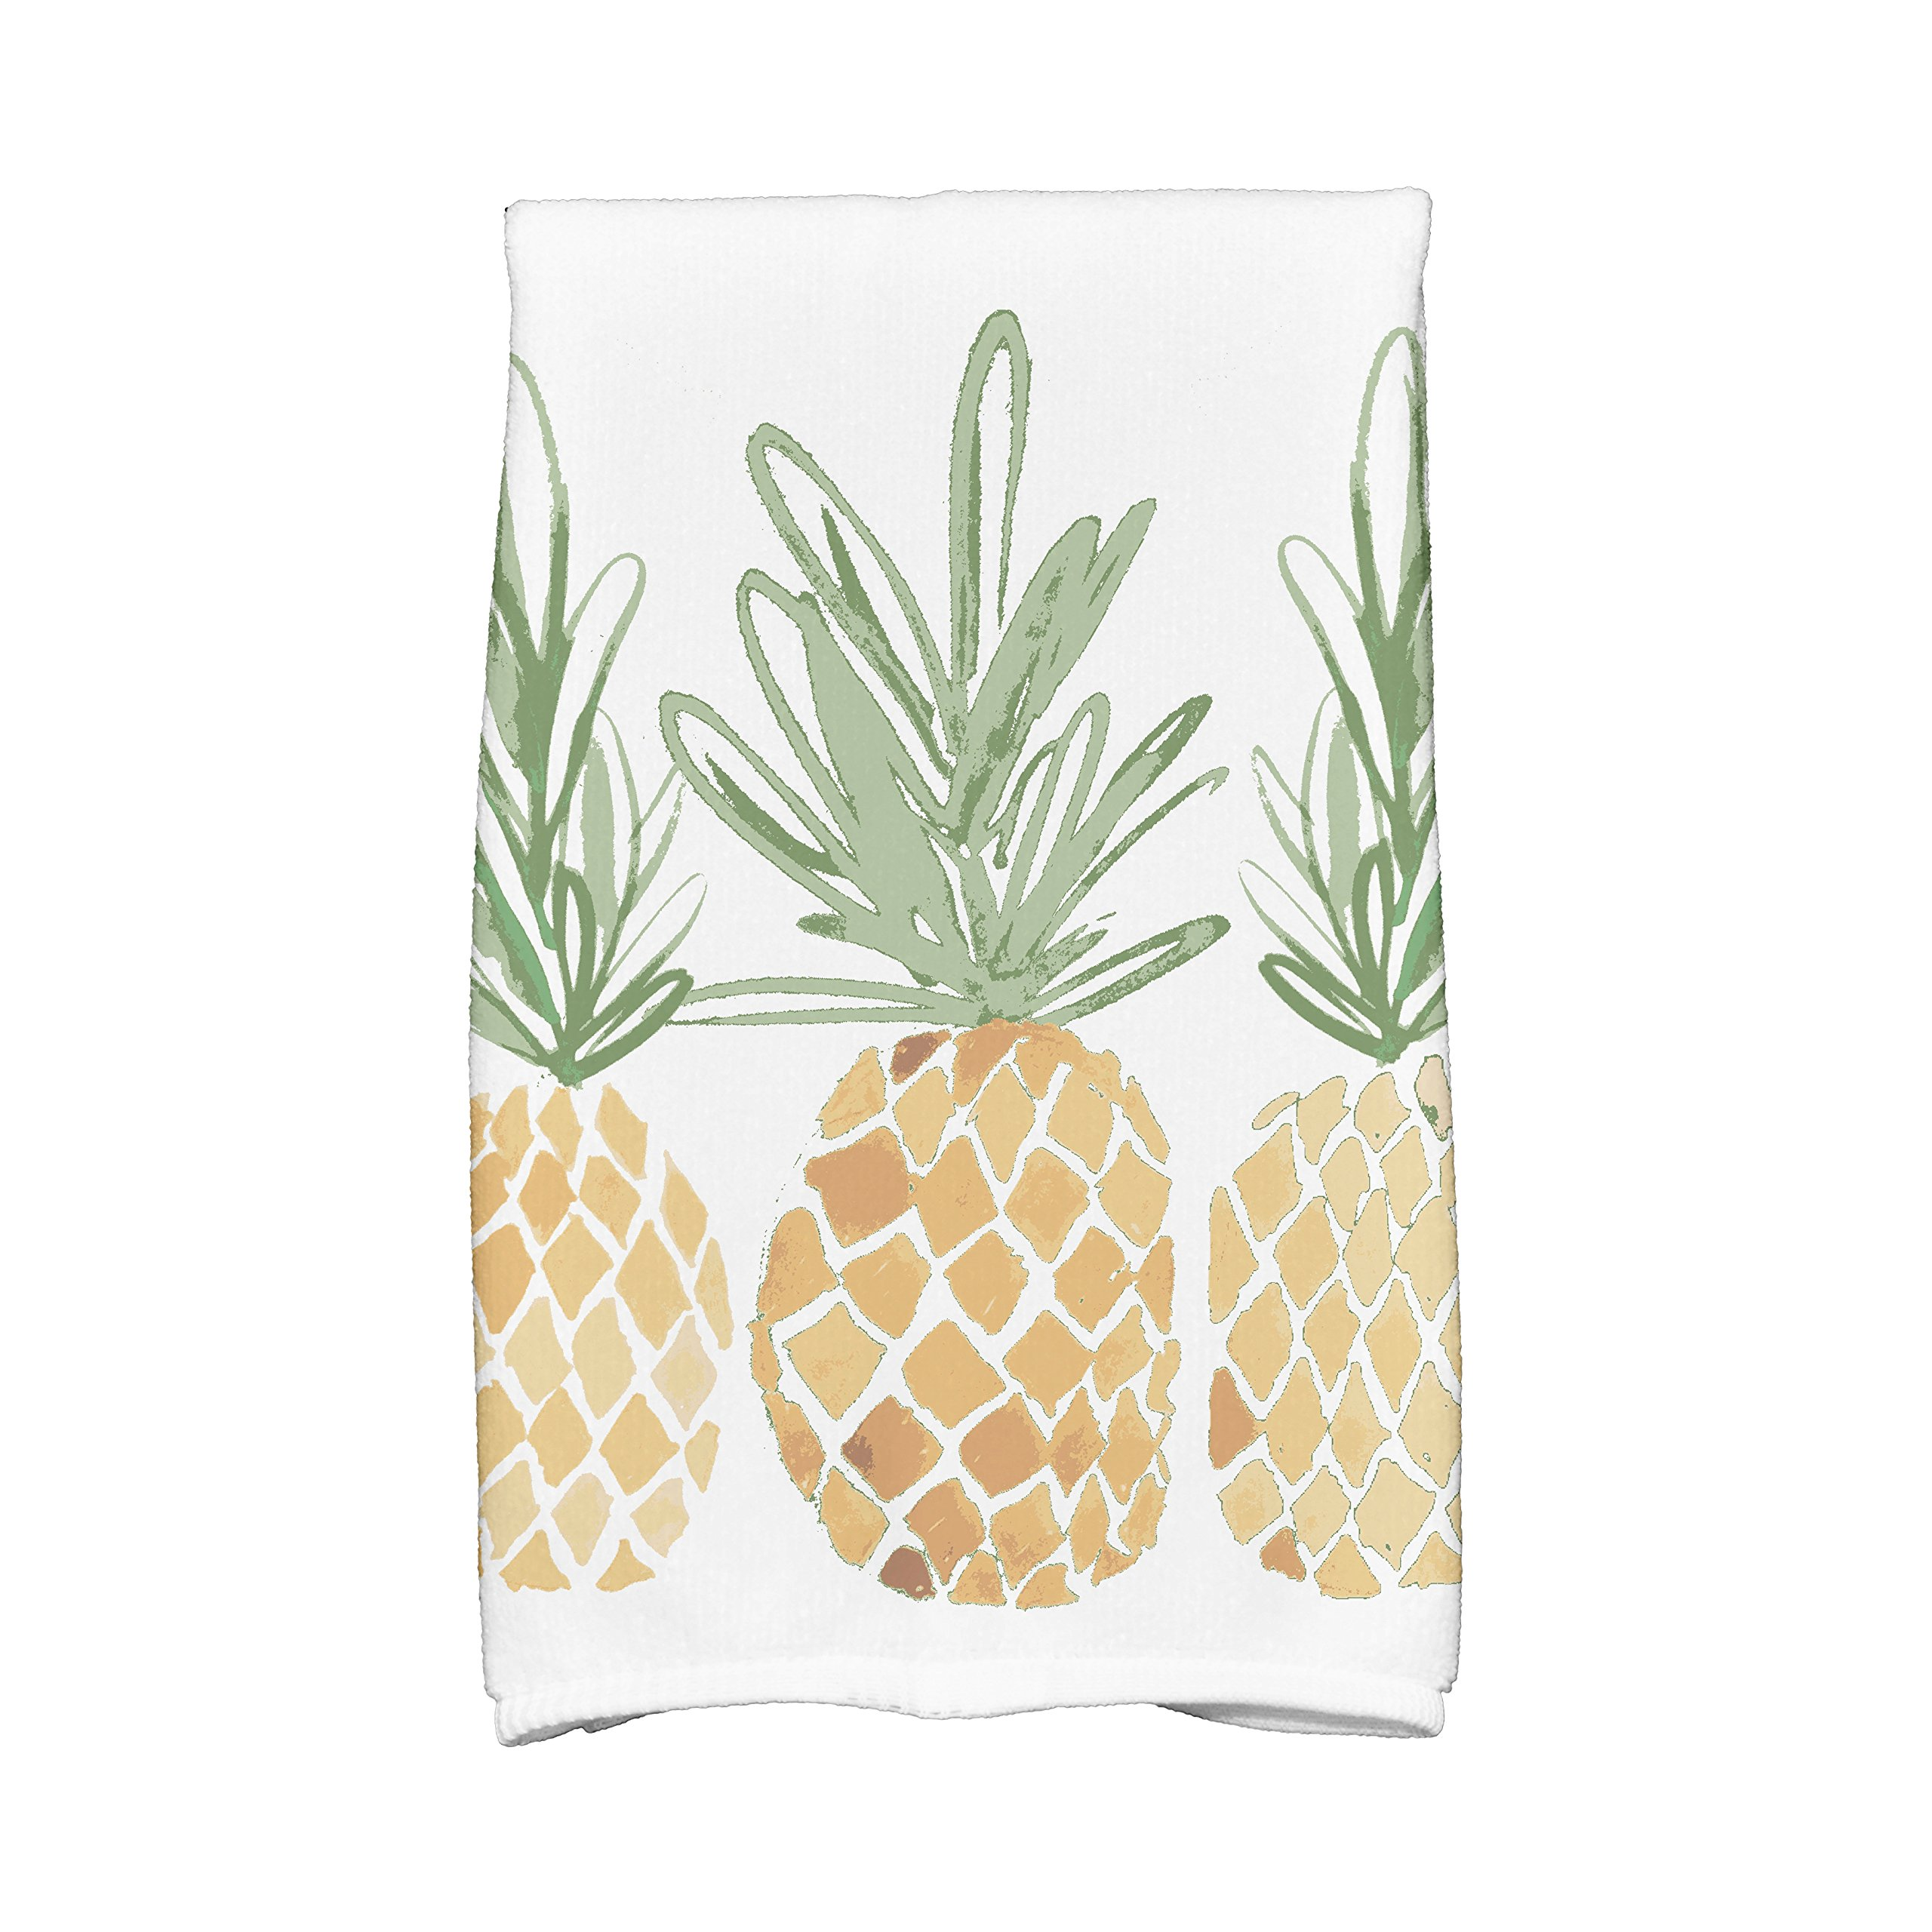 E by design KTG804YE6 3 Pineapples, Geometric Print Kitchen Towels, 16 x 25, Gold